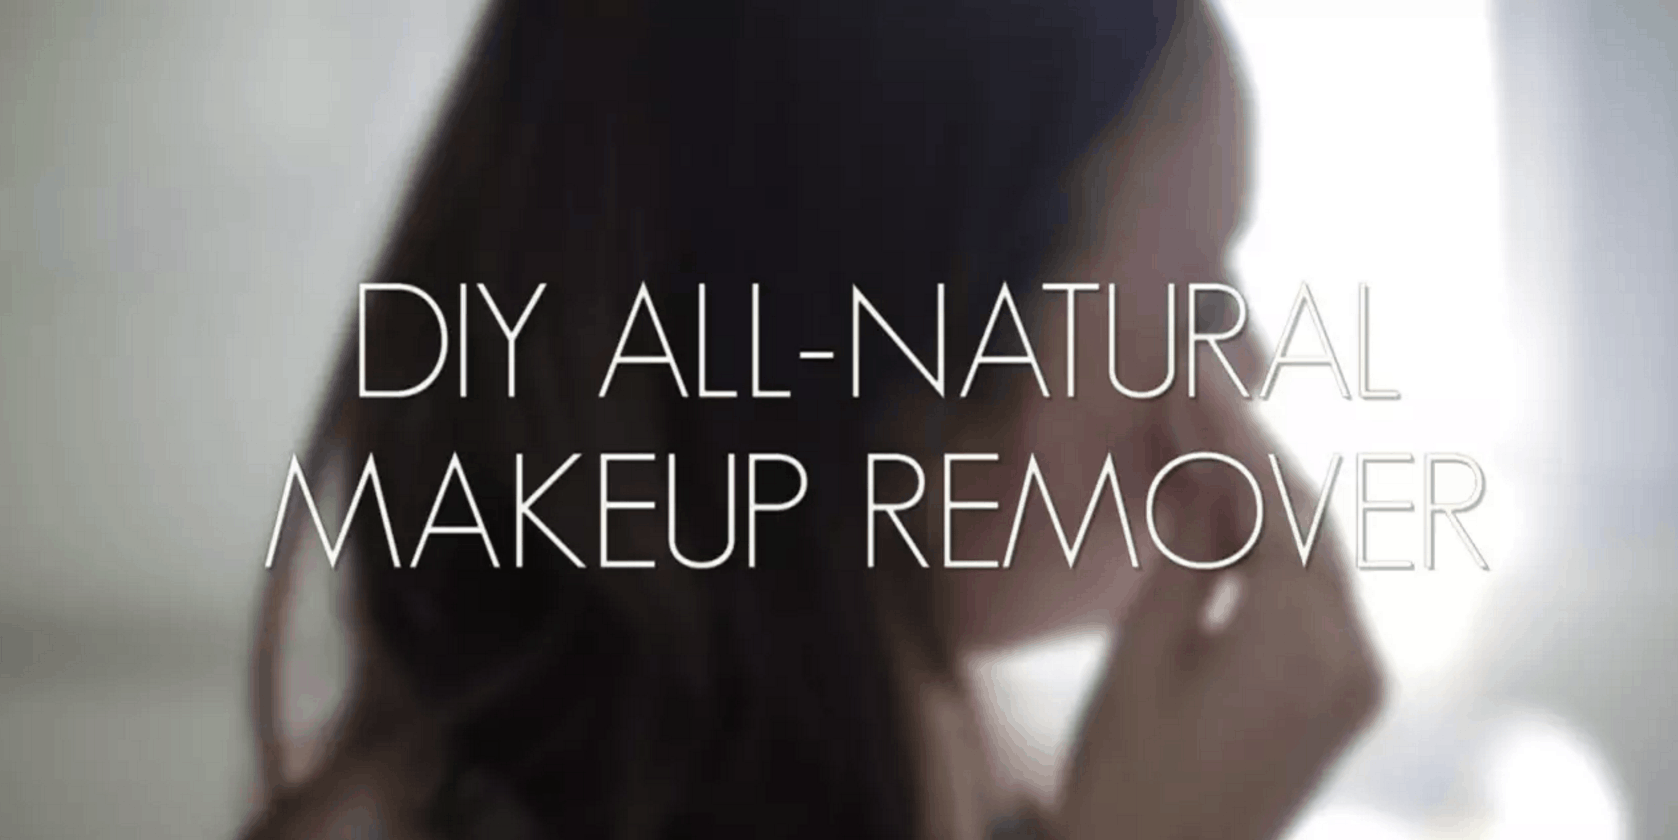 DIY all-natural makeup remover from Leaf.tv